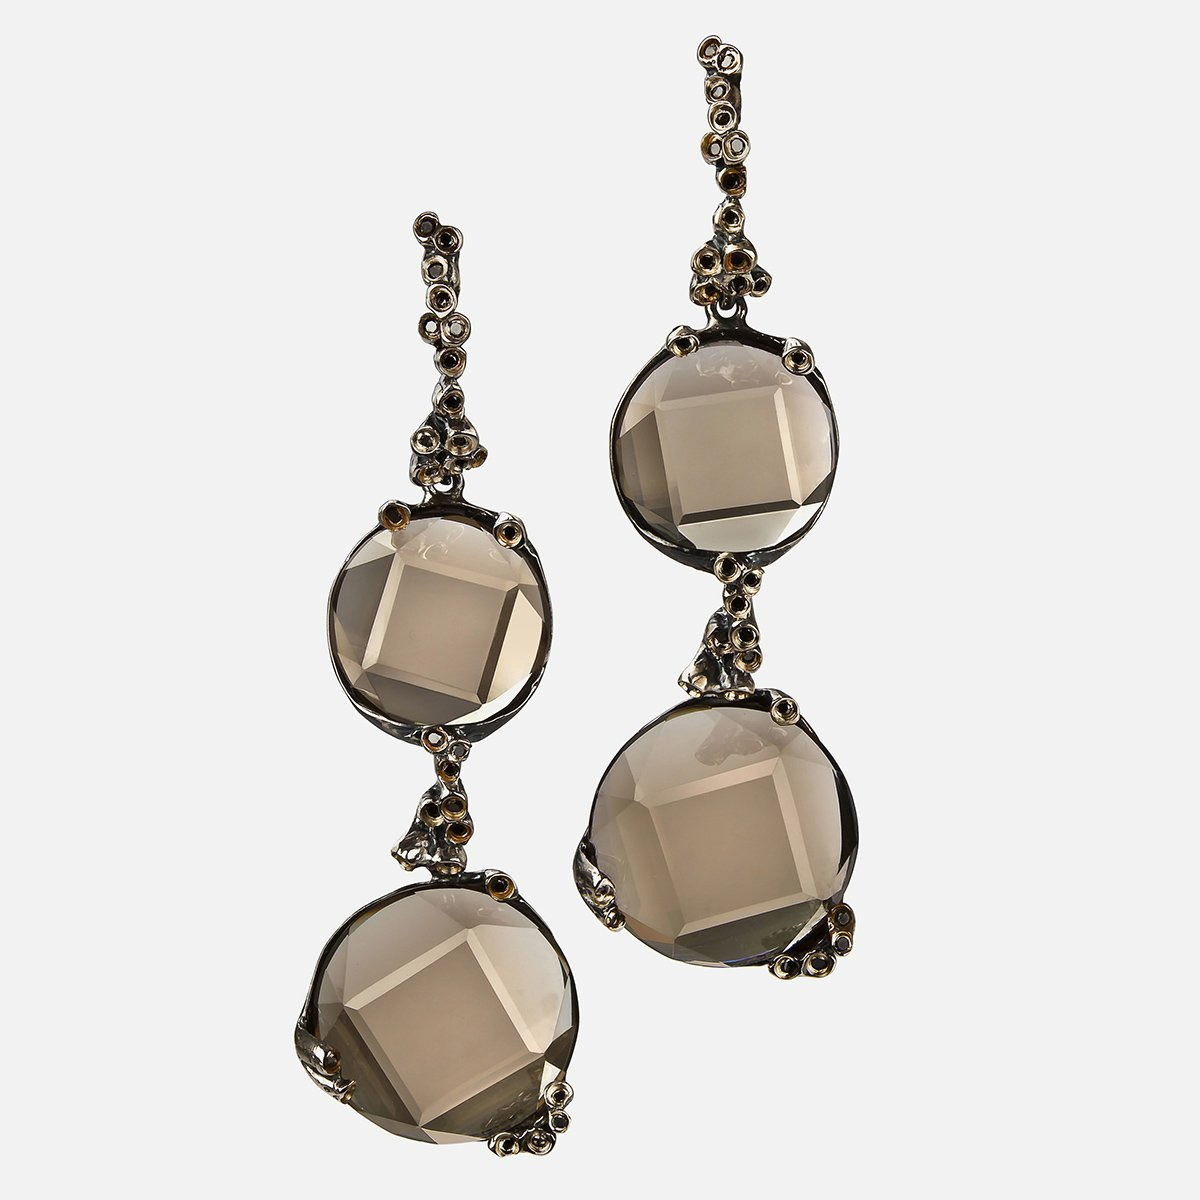 Peneira Longo Earrings